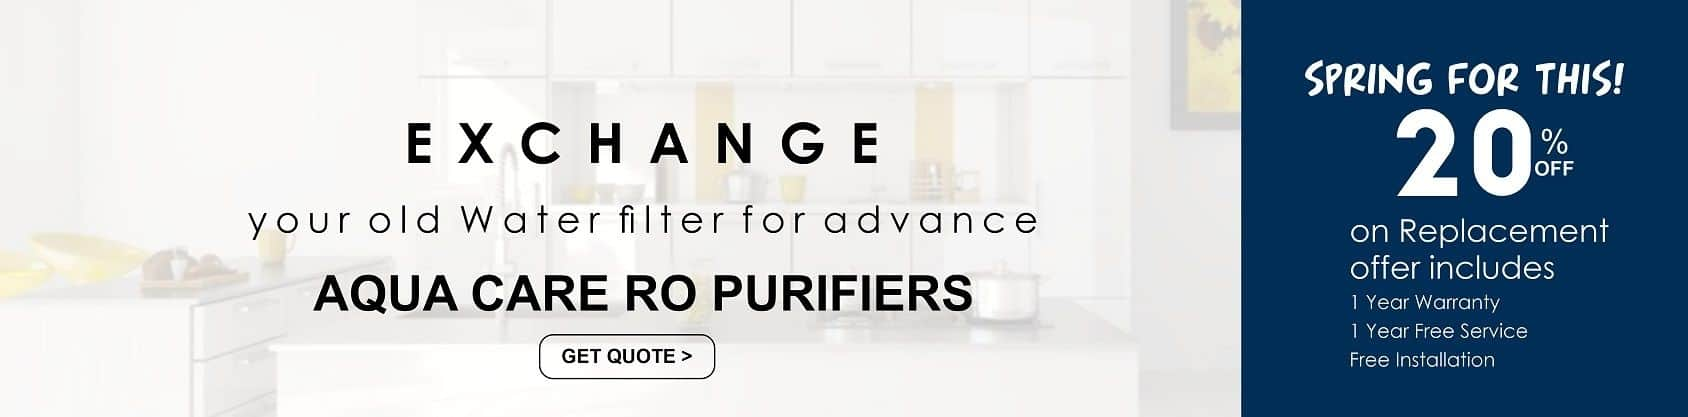 replace your old RO purifier with new aqua care ro purifier system